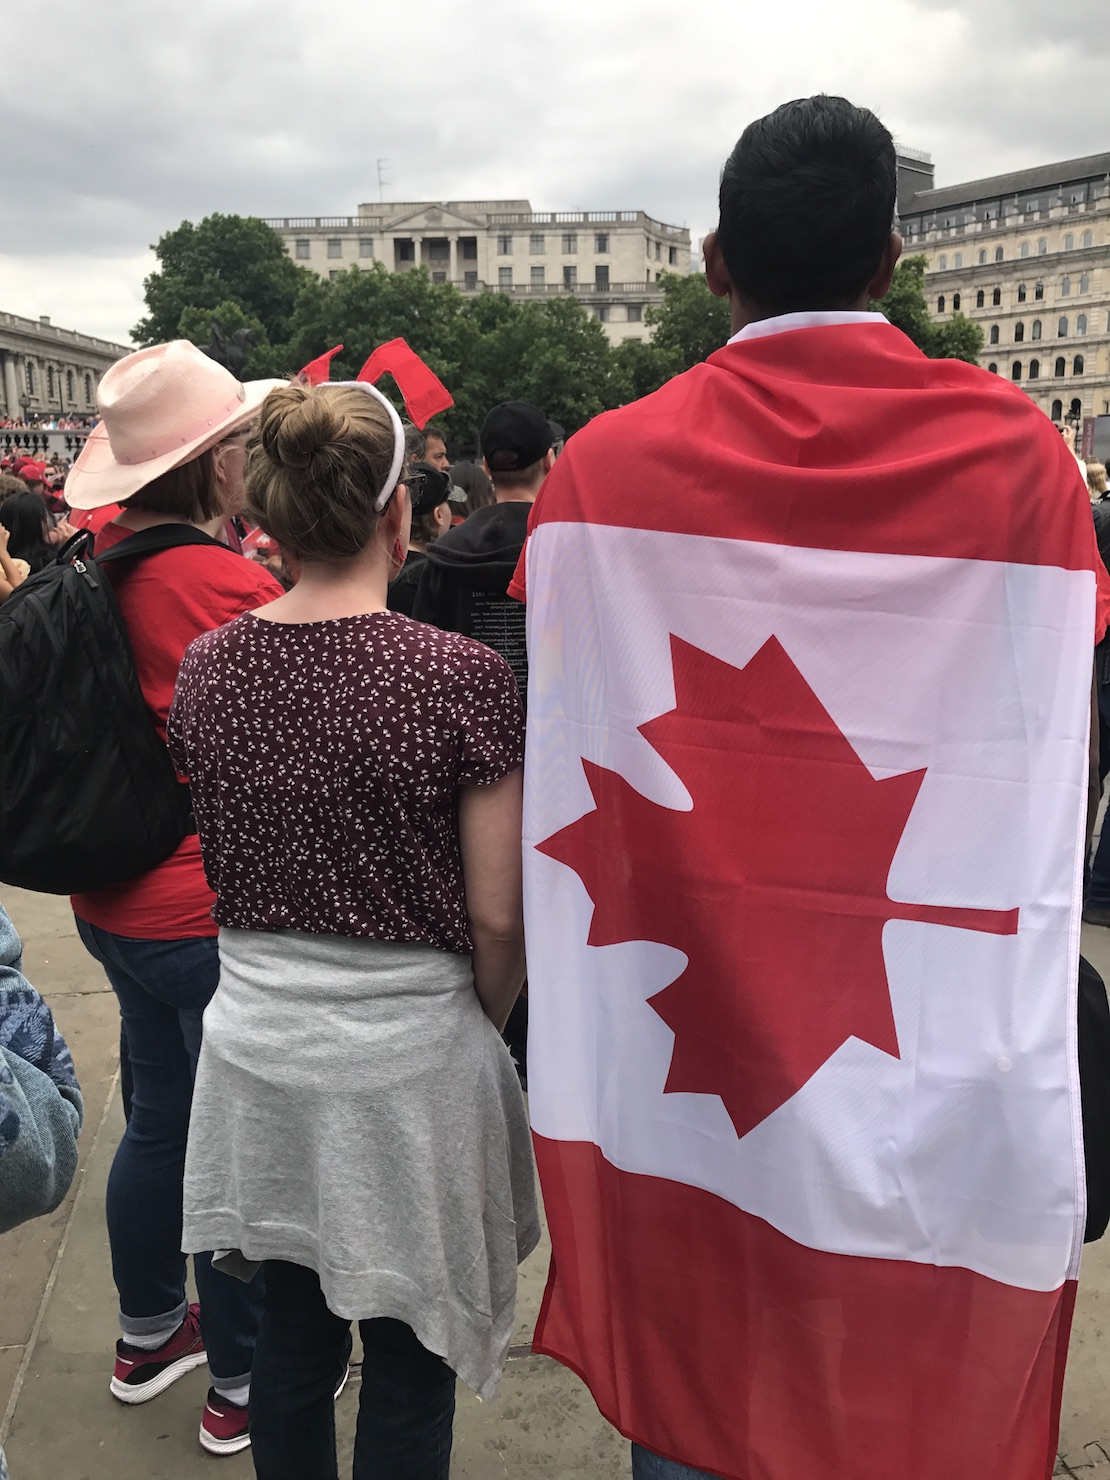 Wrapped in the Canadian flag at the Canada Day celebration at Trafalgar Square, London